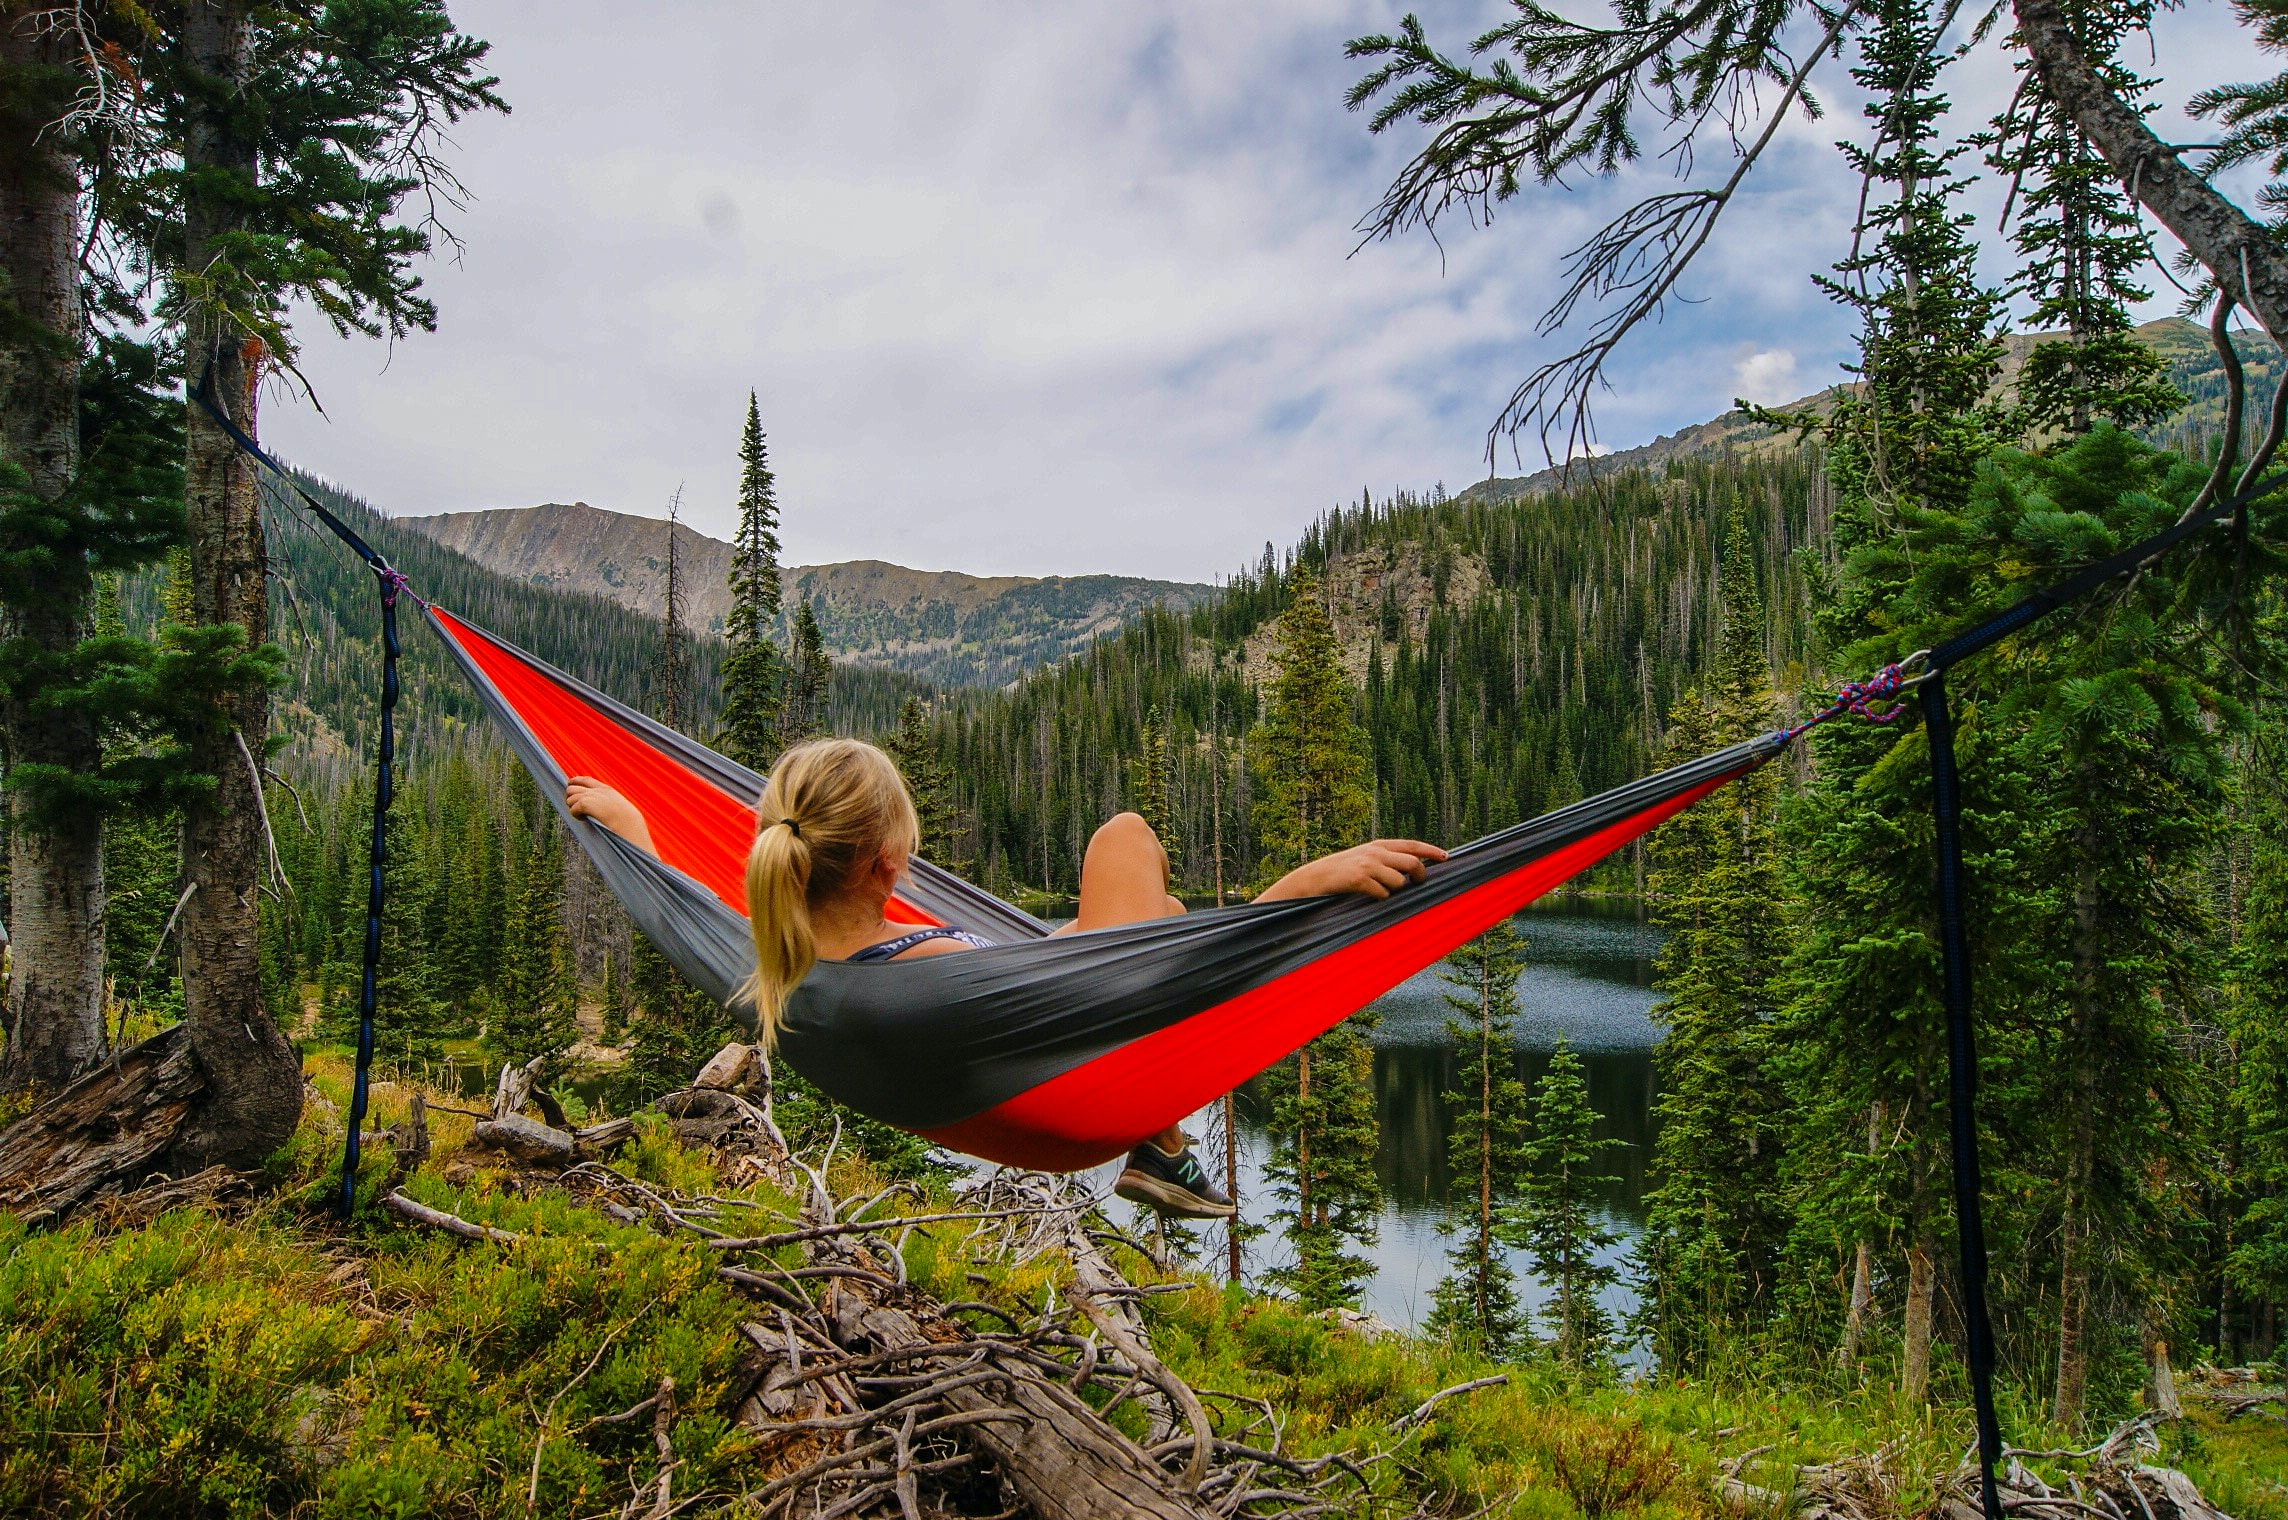 A girl with blonde hair sits in a red and gray hammock overlooking mountains, trees, and water.